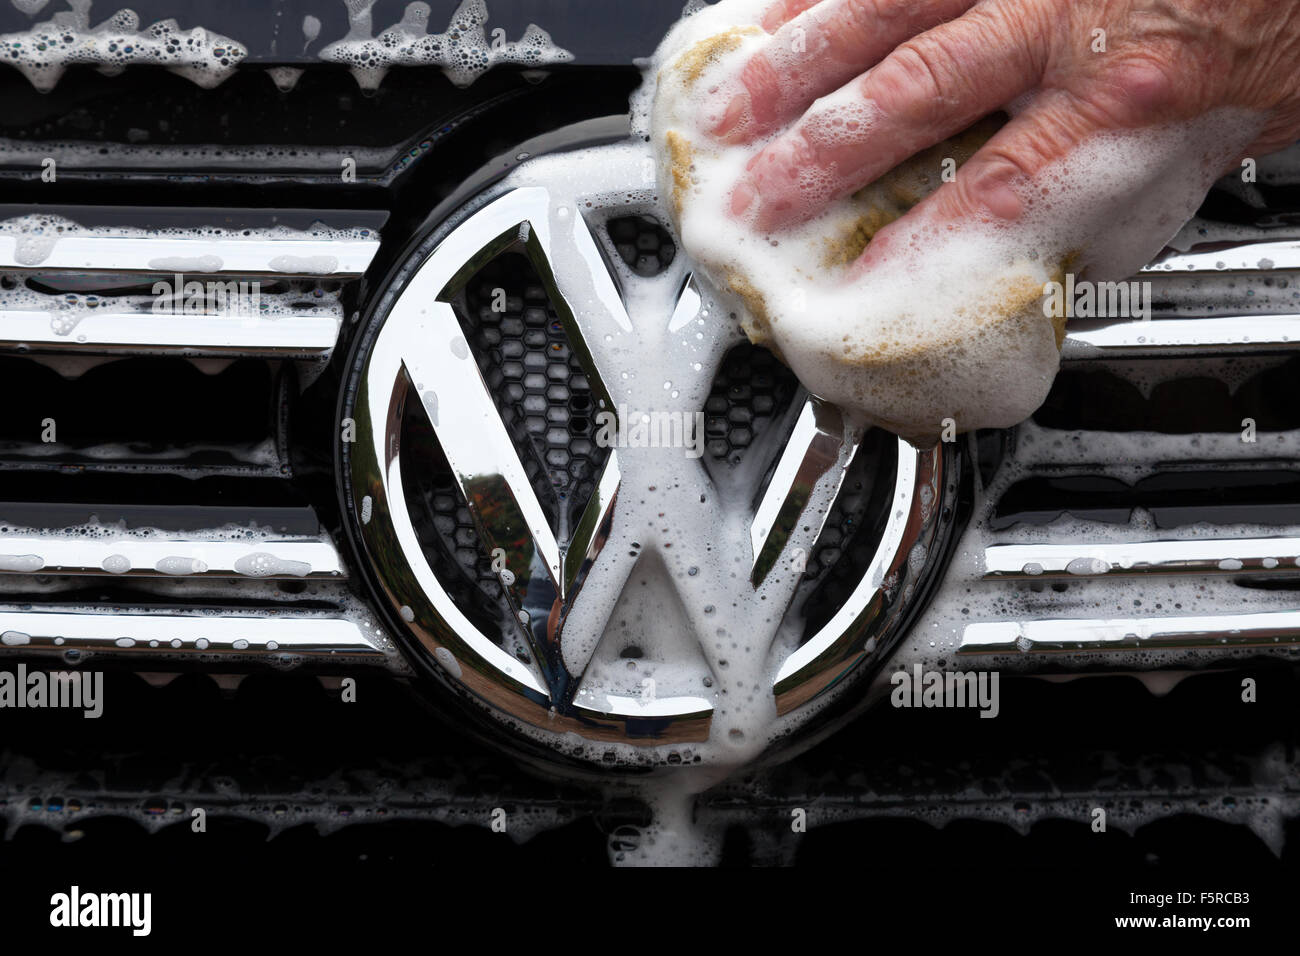 Hand washing a VW car in the U.K. - Stock Image